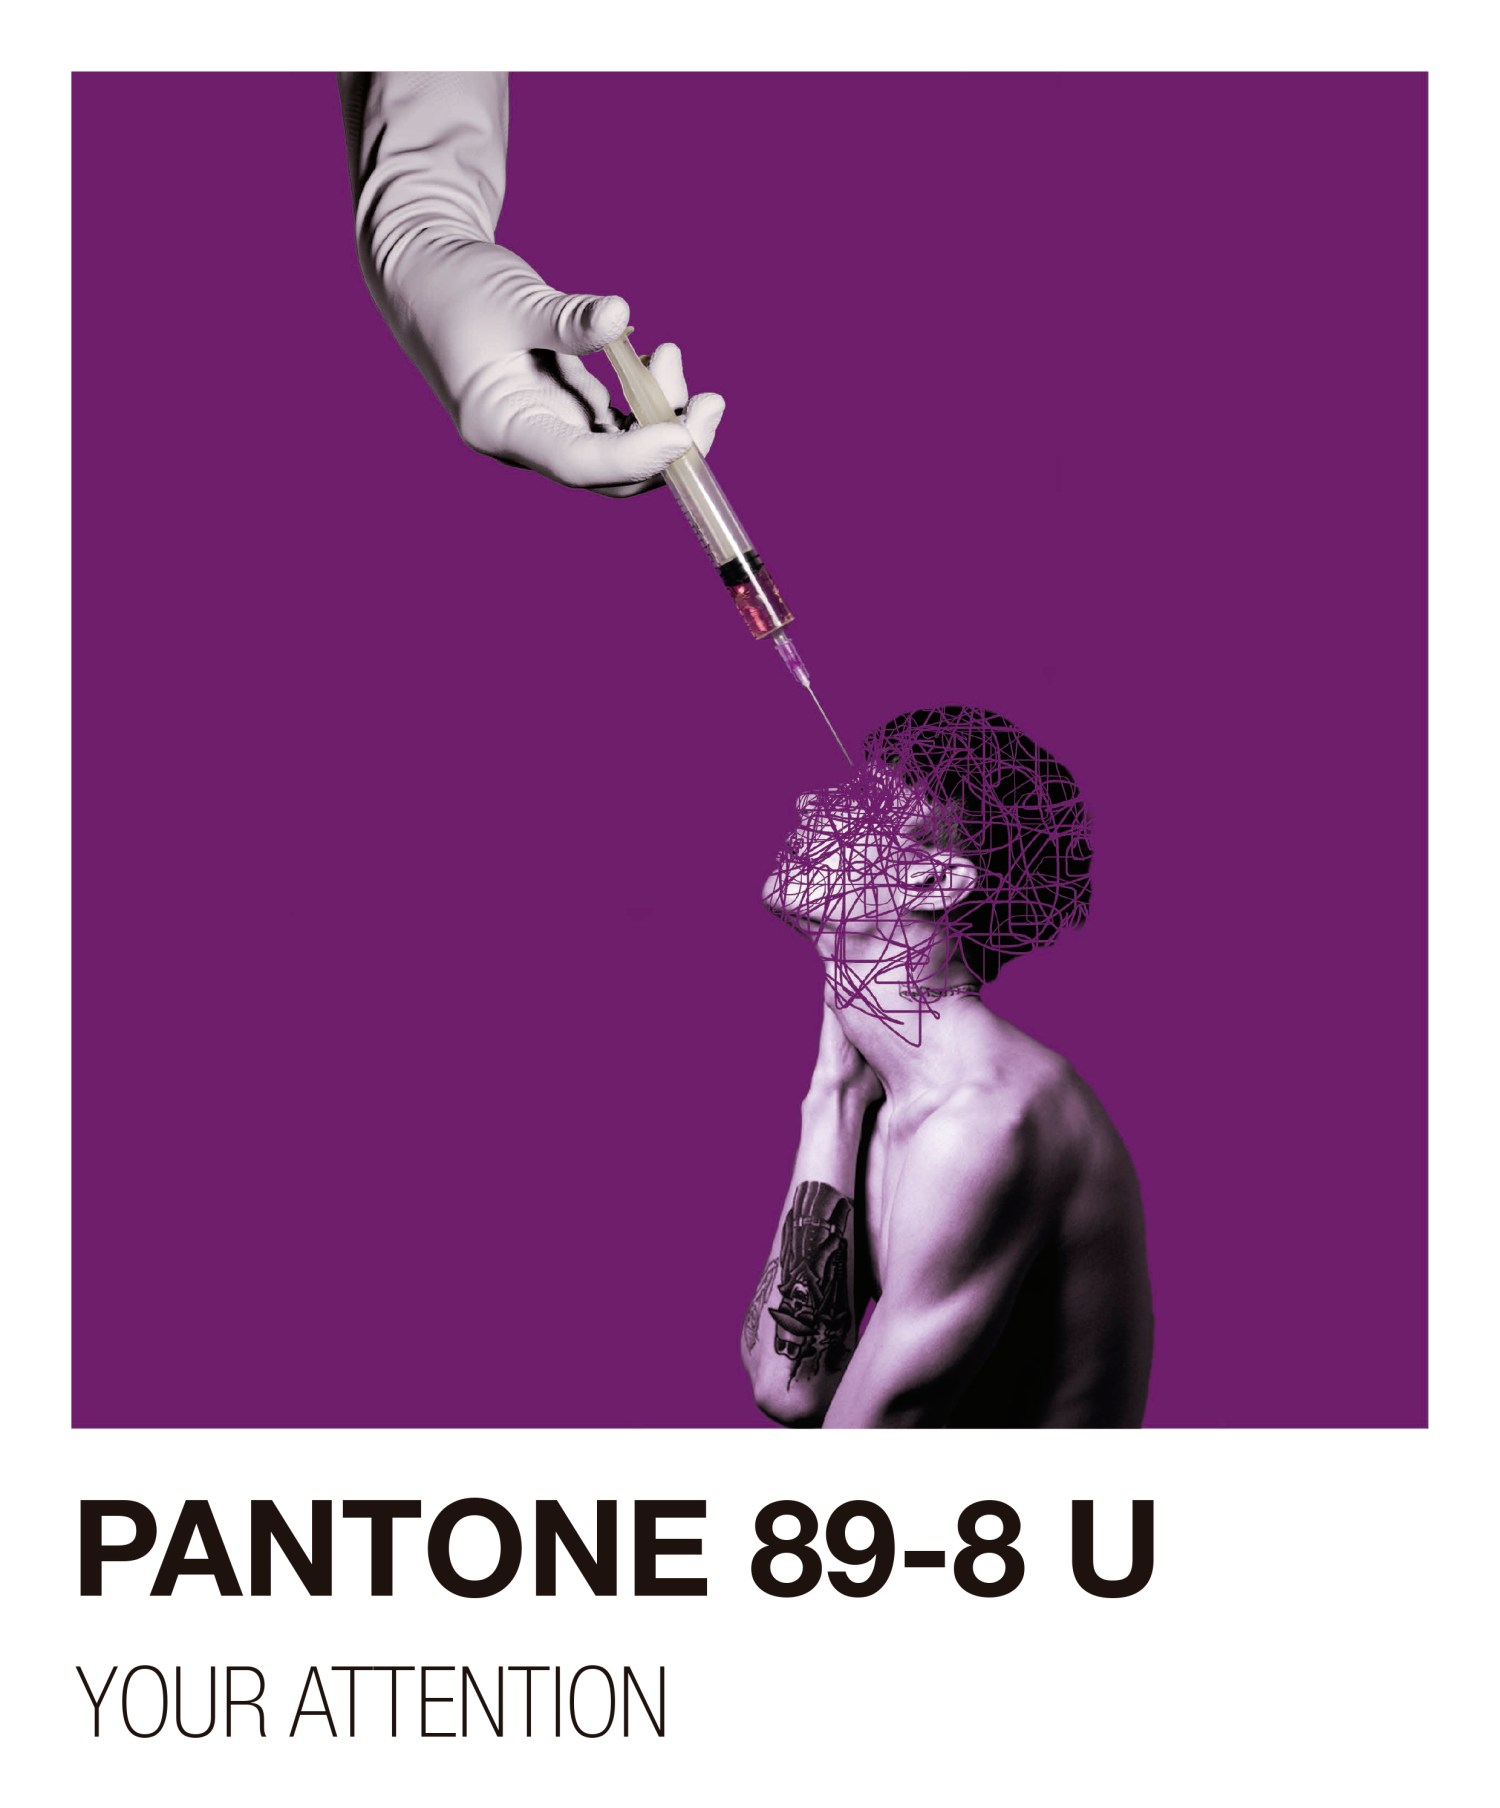 PANTONE: YOUR ATTENTION - Abstract Photography